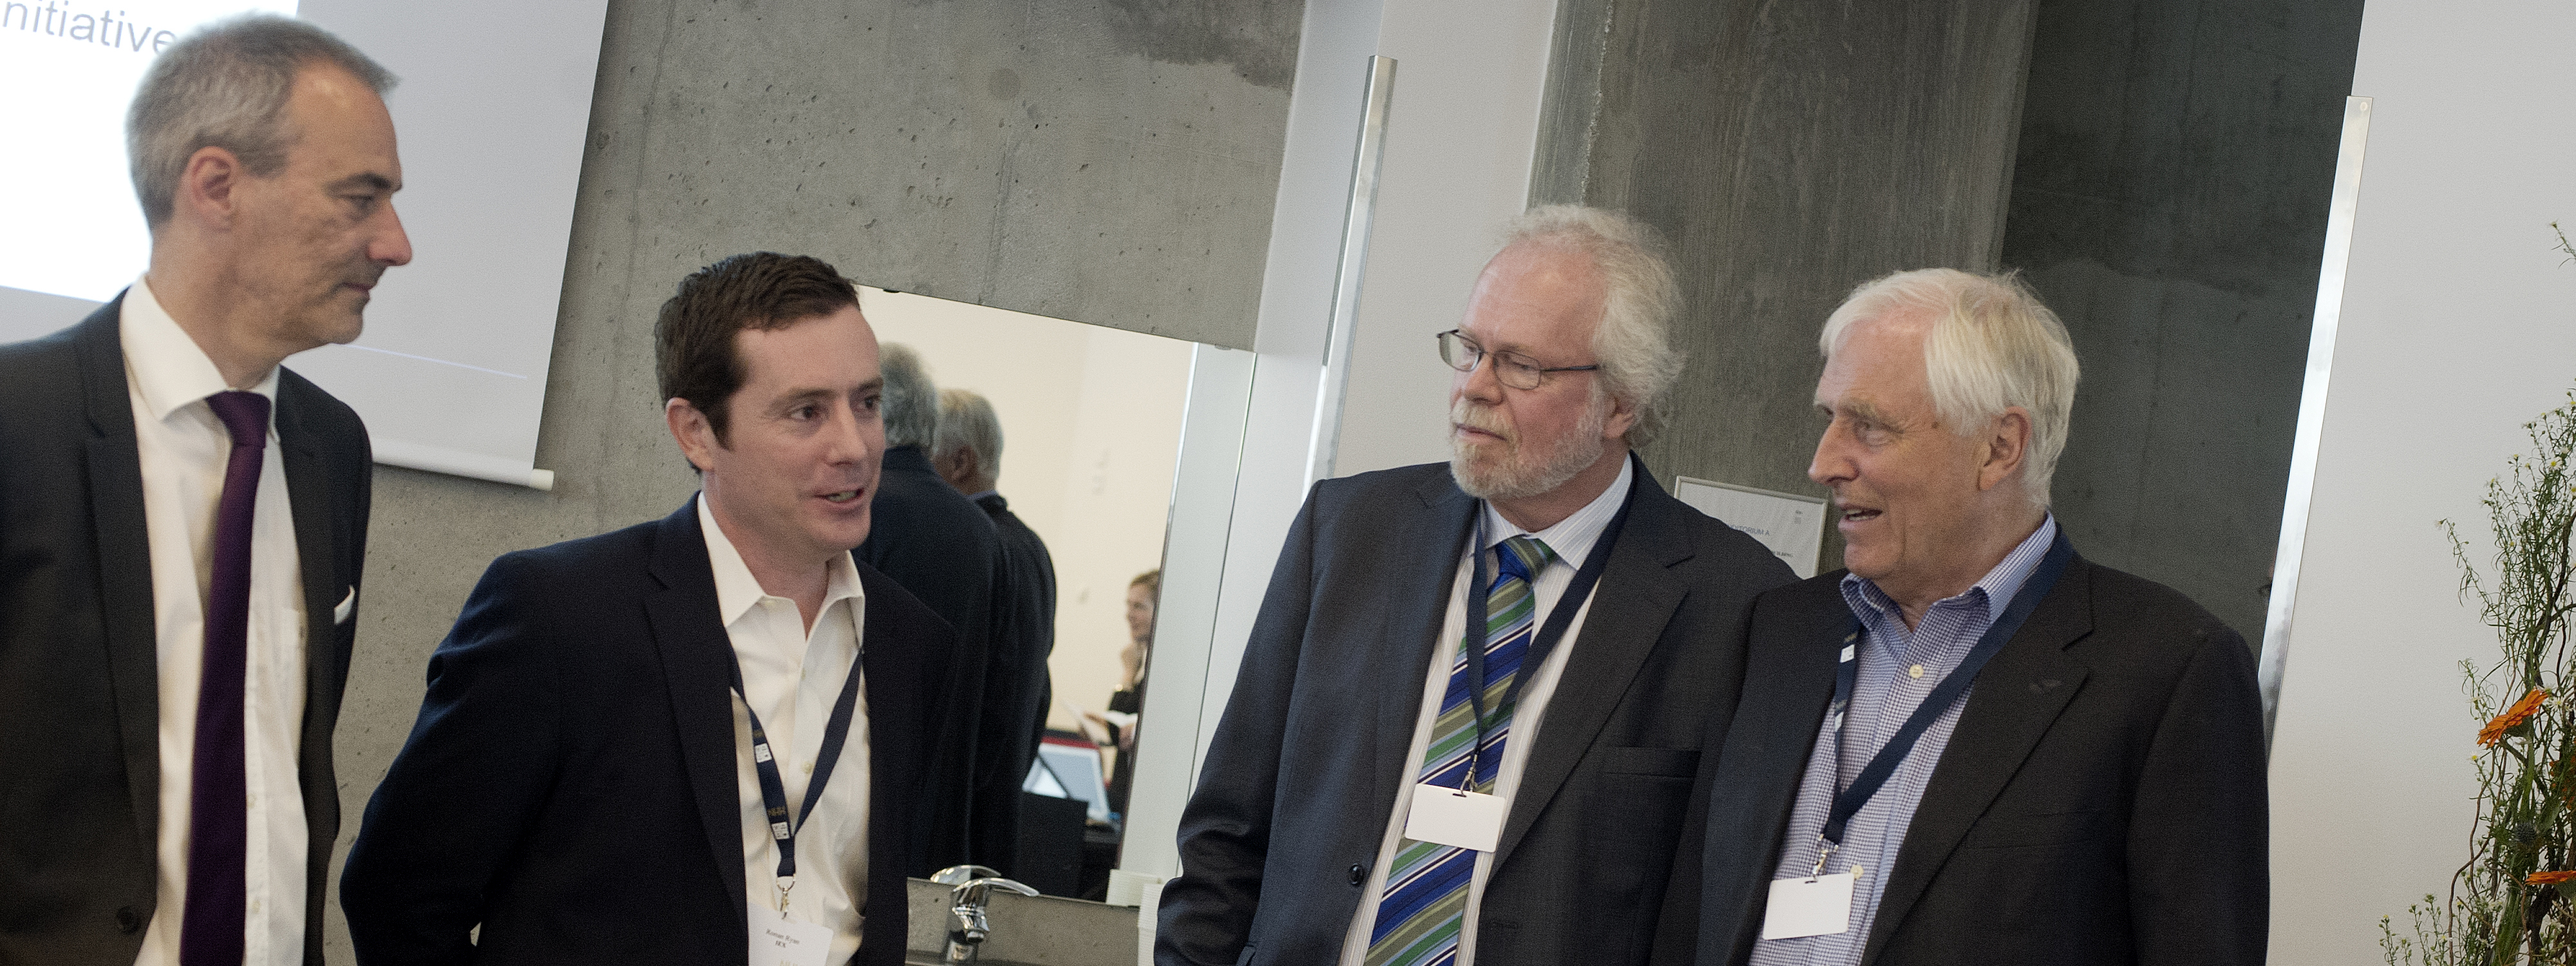 Professor Klaus Reiner Schenk-Hoppé (left) Ronan Ryan Chief Strategy Officer at IEX GROUP, Terje Lensberg and Thore Johnsen, both professor at Department of Finance NHH, at Jan Mossin Memorial Symposium «Do financial markets double-deal investors?».